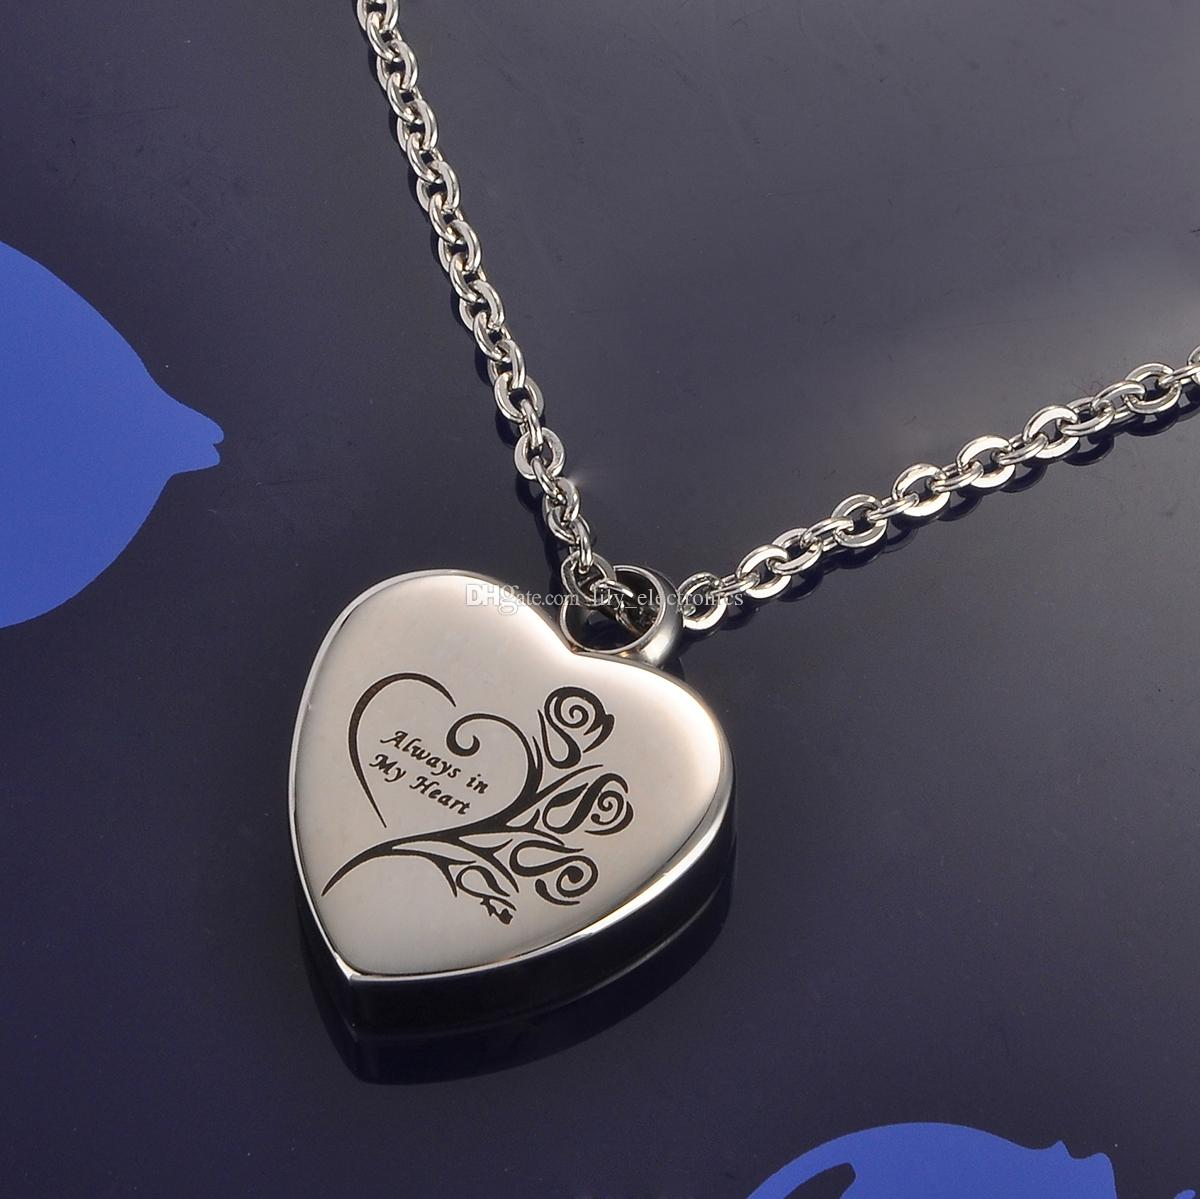 """Lily Stainless Steel Memorial Pendant """"Always in my heart"""" Urn Locket Cremation Jewelry Necklace with gift bag and chain"""